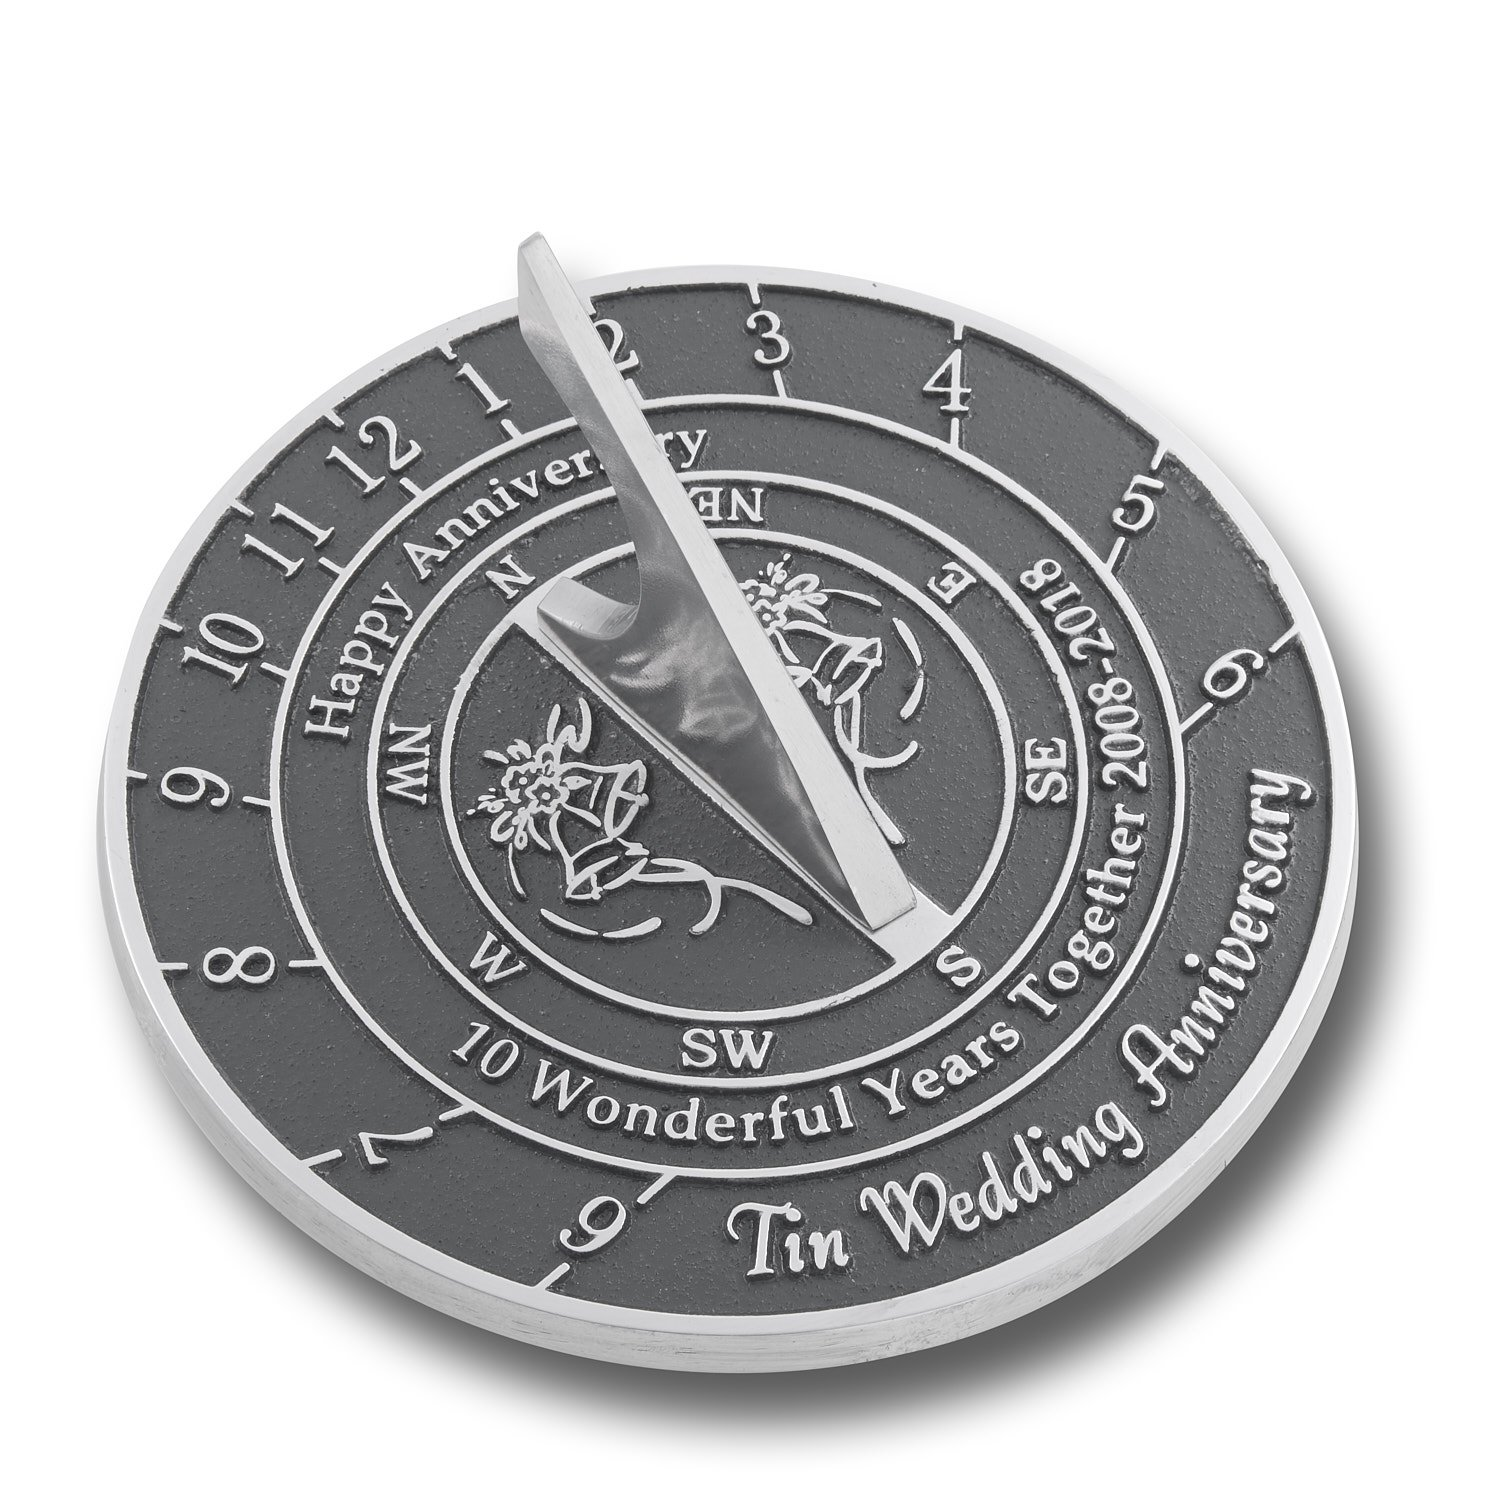 The Metal Foundry 10th Tin Wedding Anniversary Sundial Gift Idea Is A Great Present For Him, For Her Or For A Couple To Celebrate 10 Years Of Marriage by The Metal Foundry Ltd